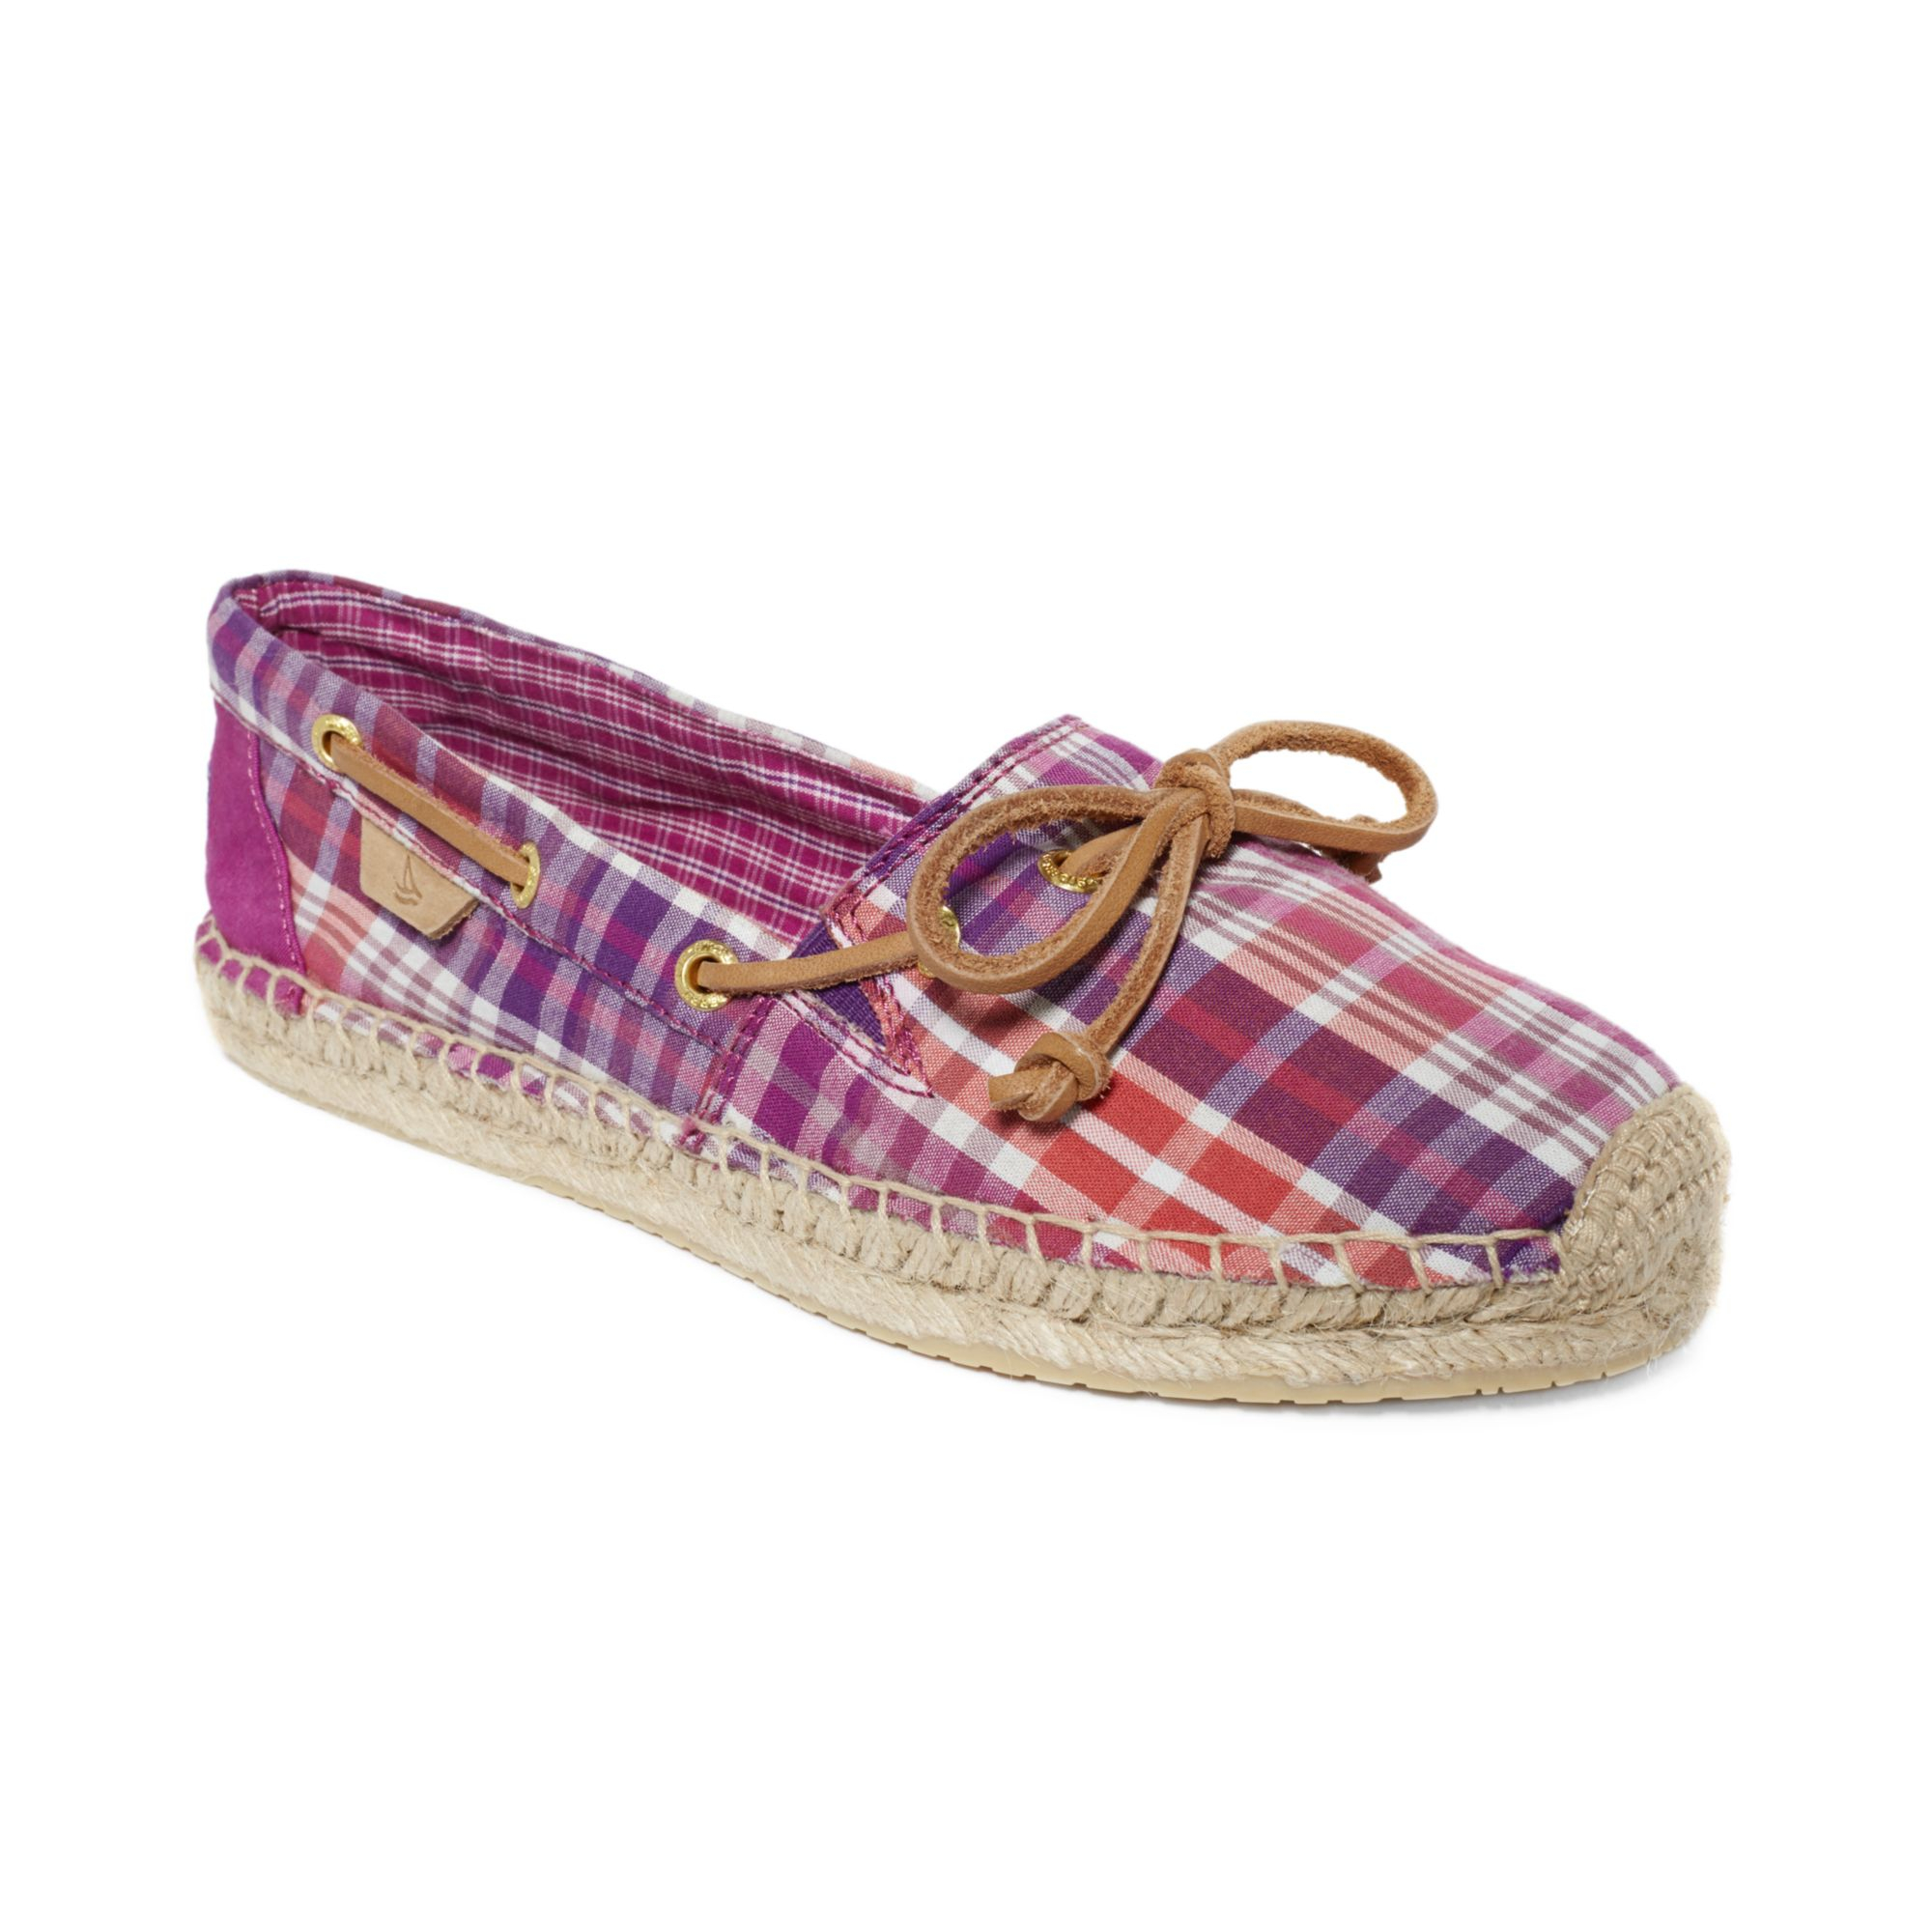 Sperry Top-sider Womens Shoes Katama Espadrille Flats in Purple (Blue